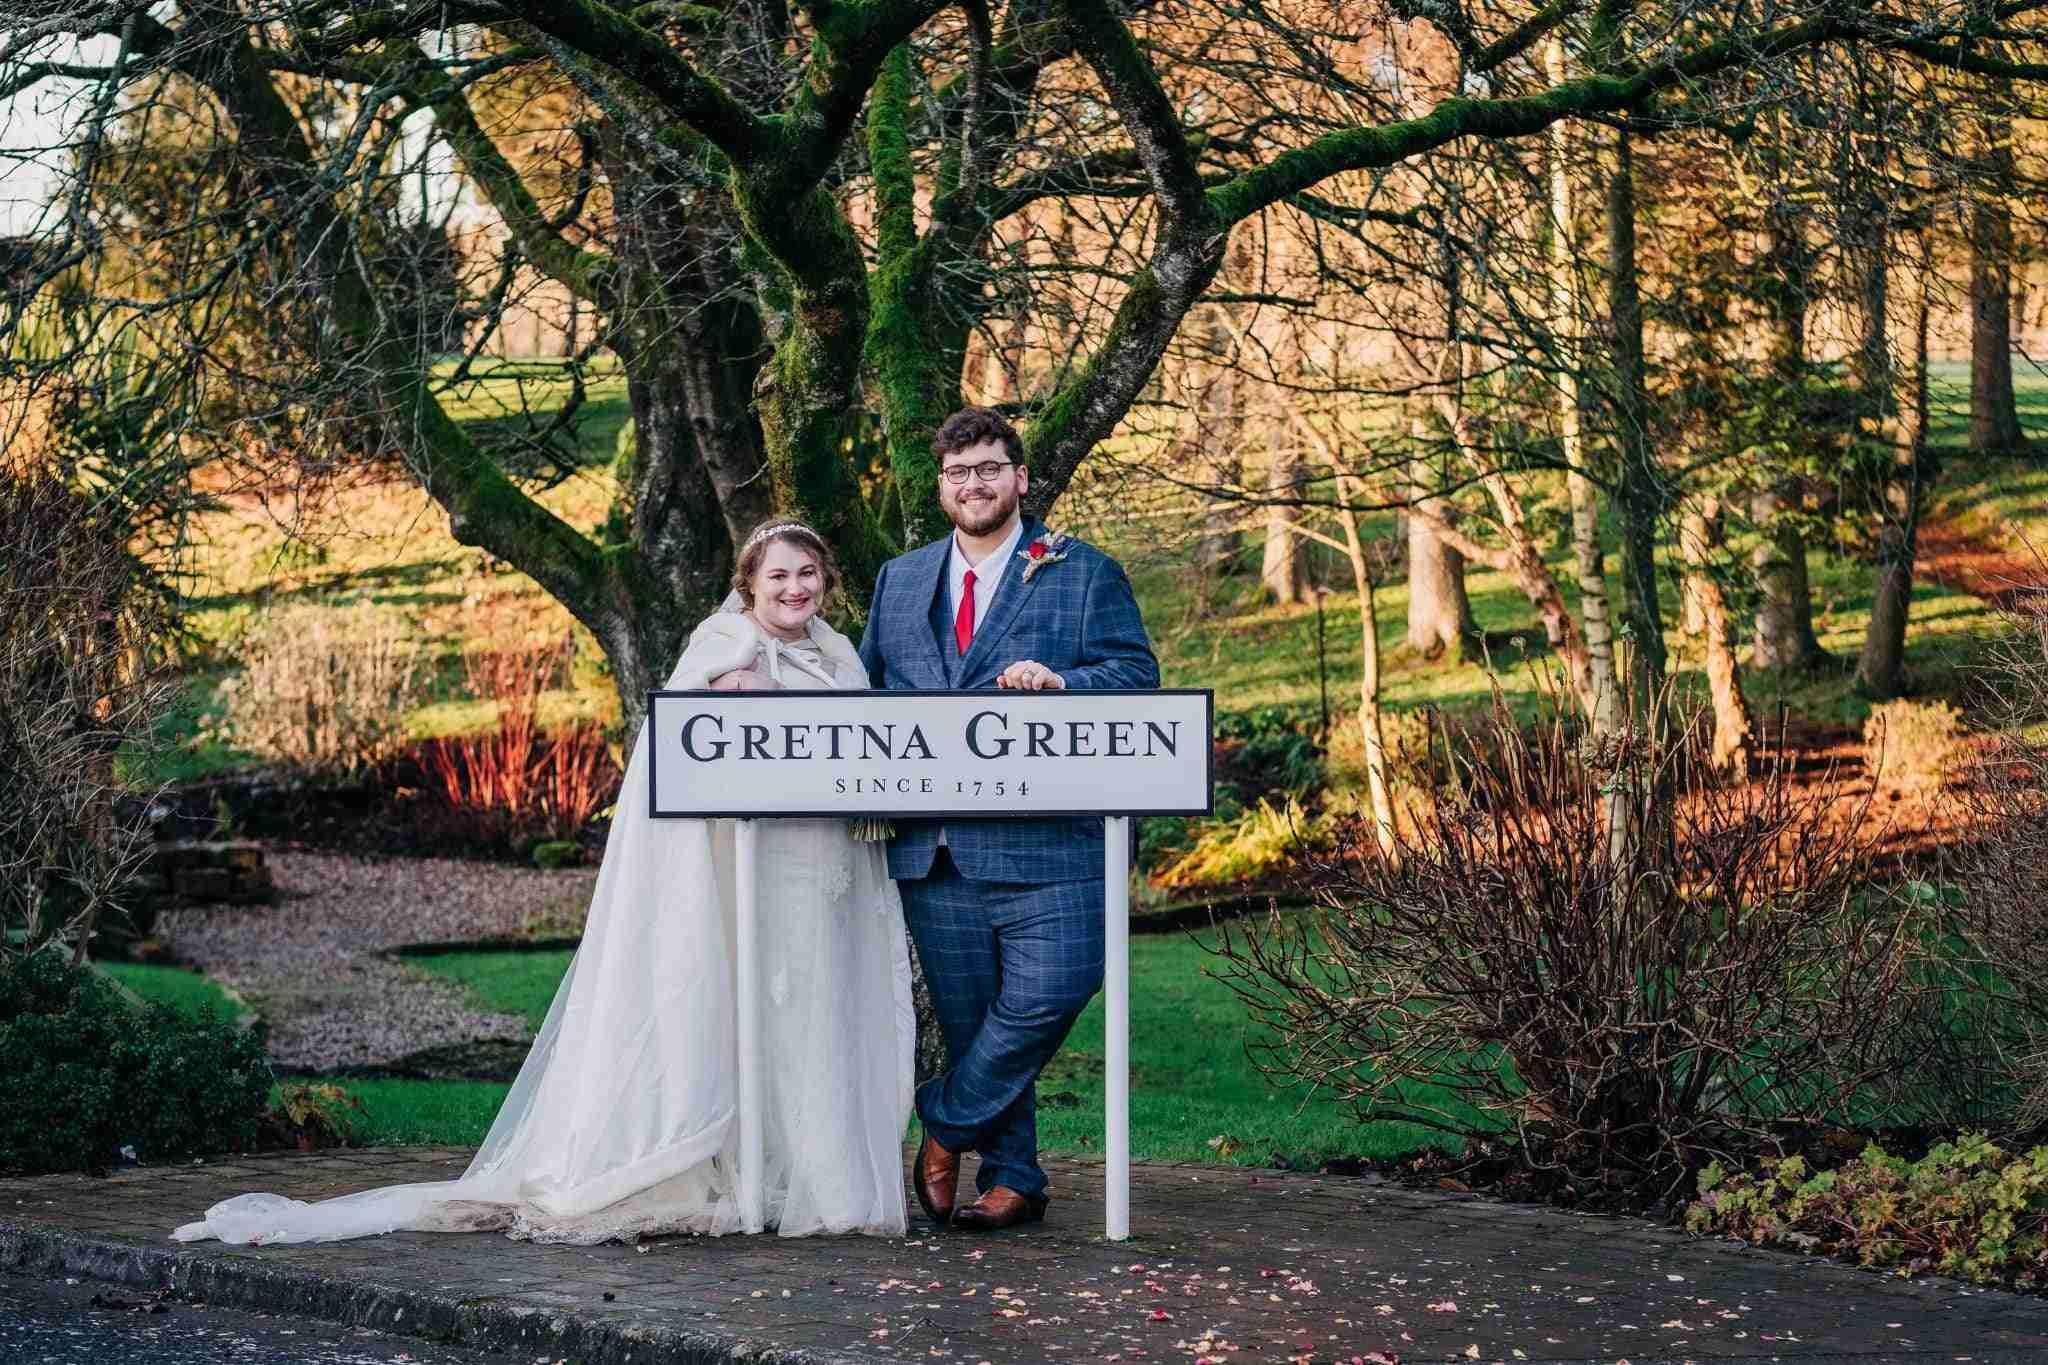 Chloe + Matt – A Gretna green Elopement